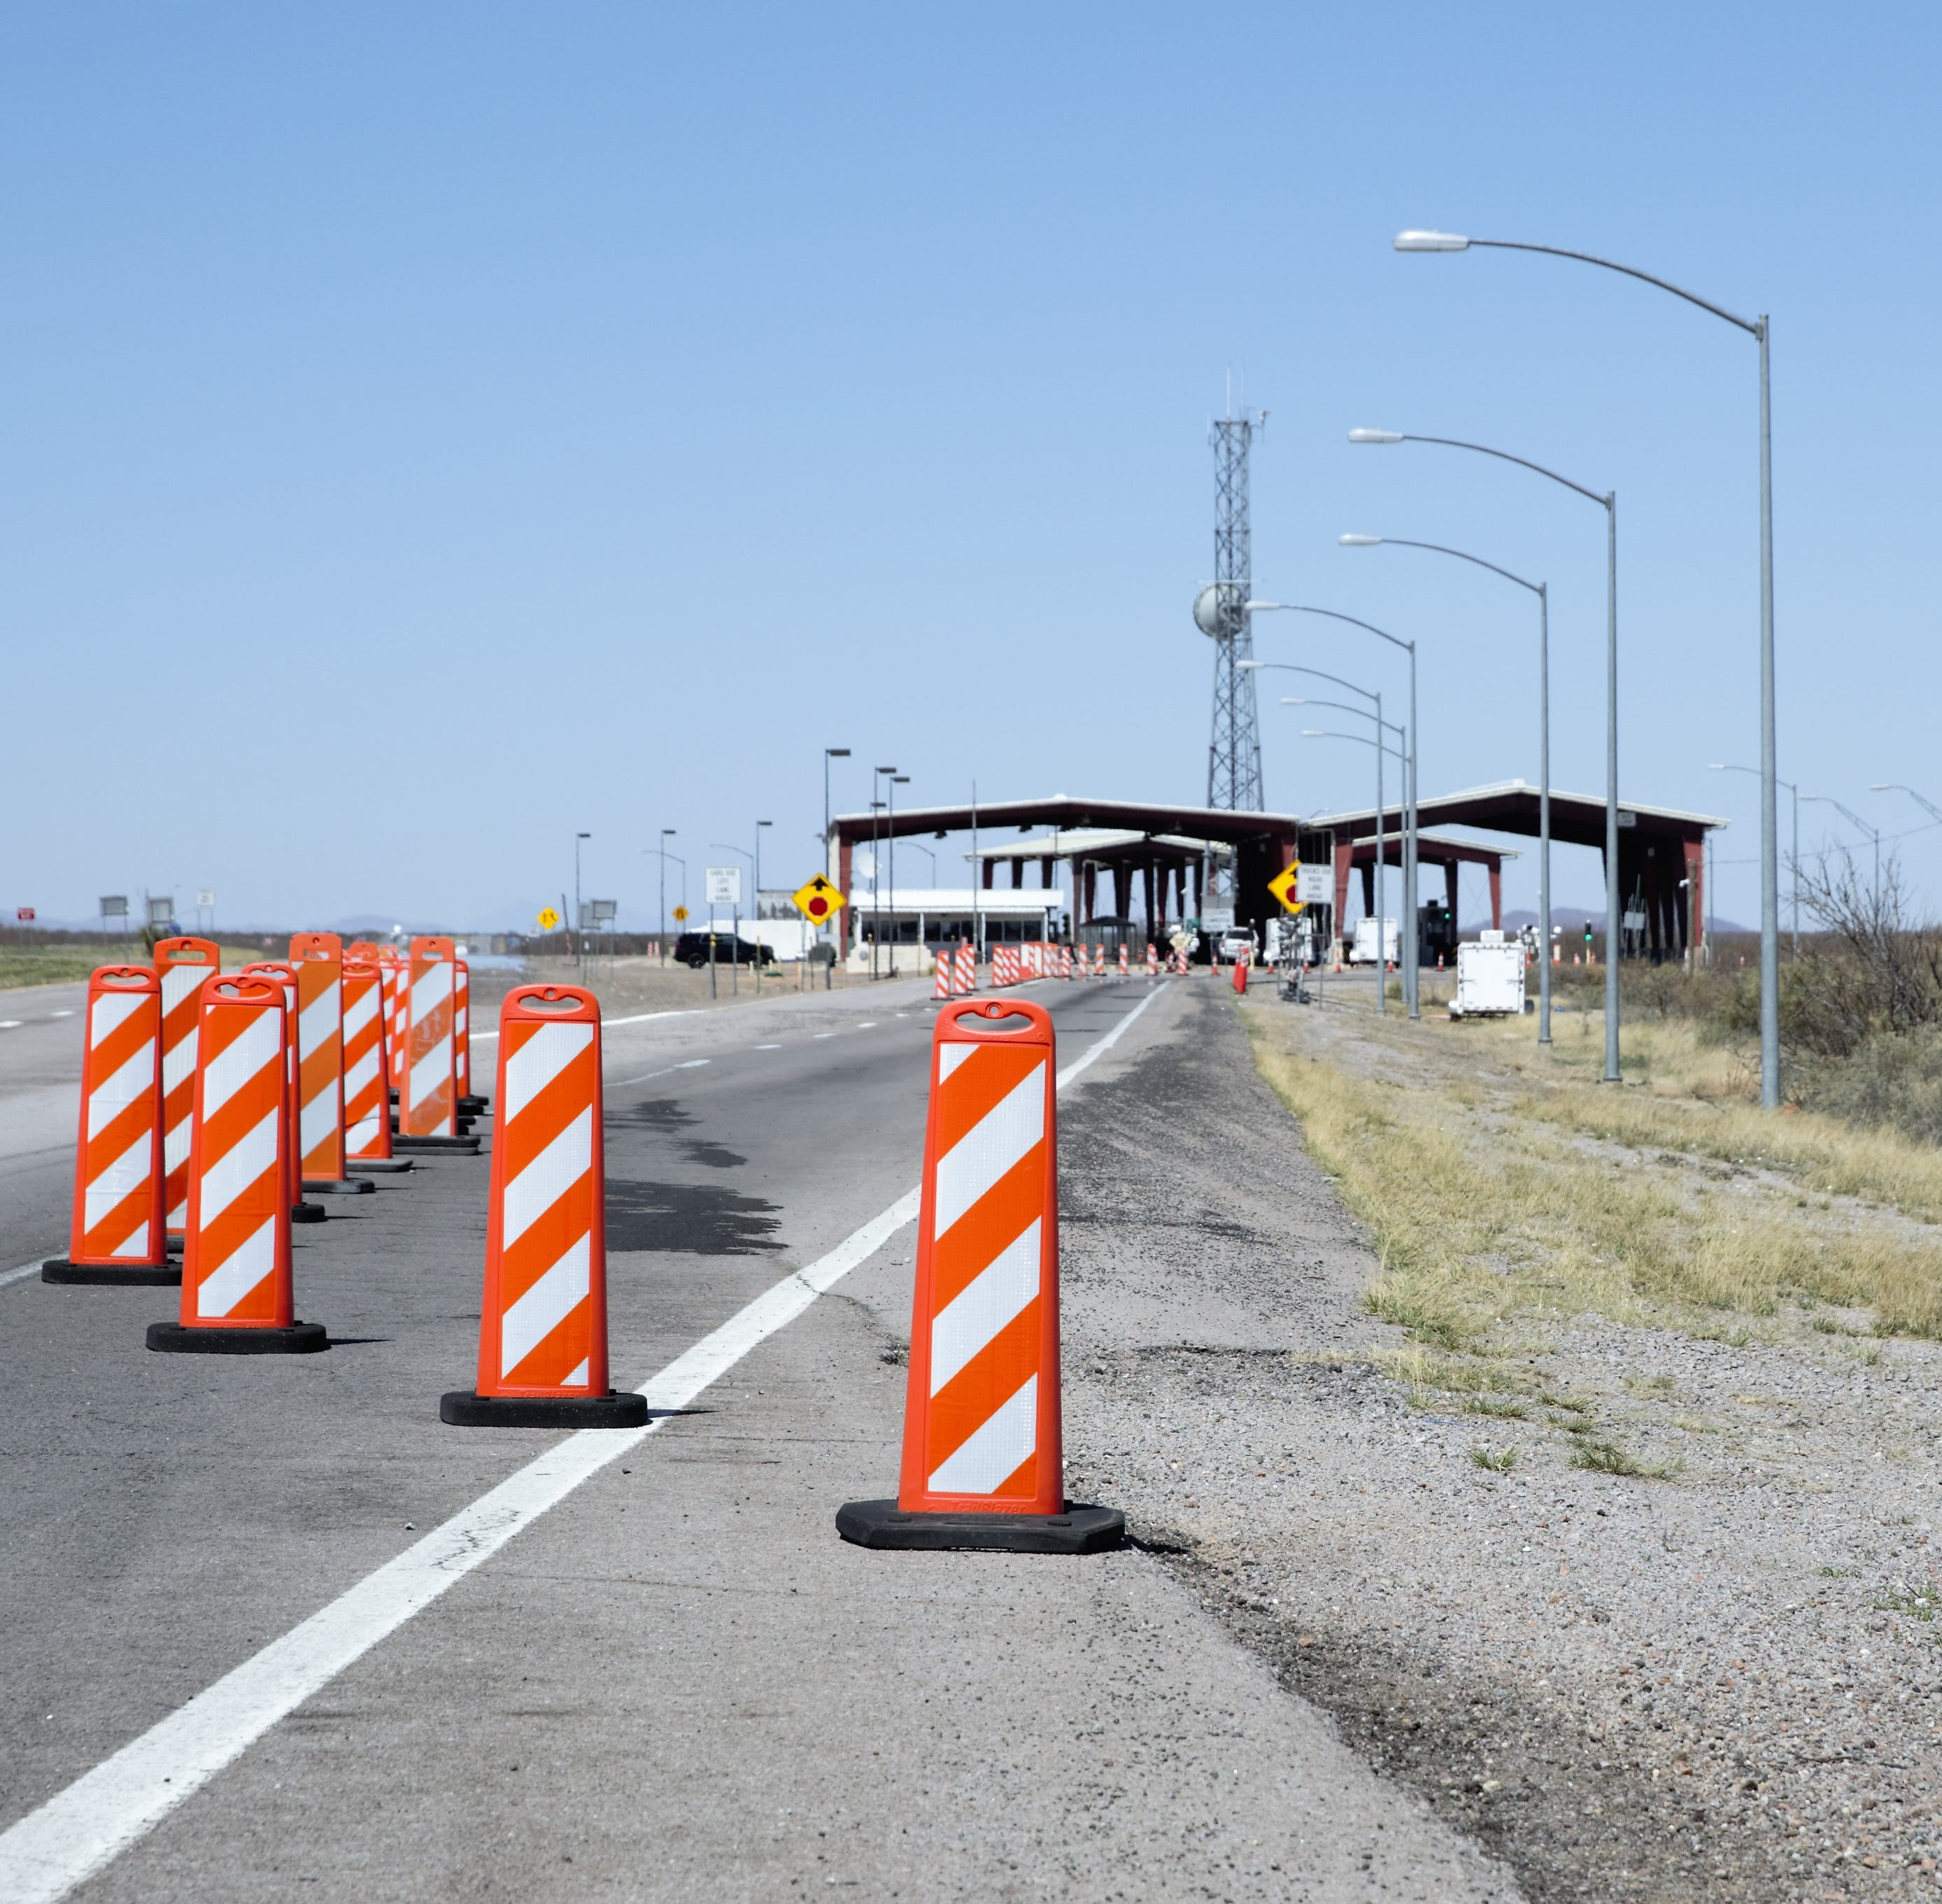 El Paso area Border Patrol checkpoints temporarily closed due to migrant influx